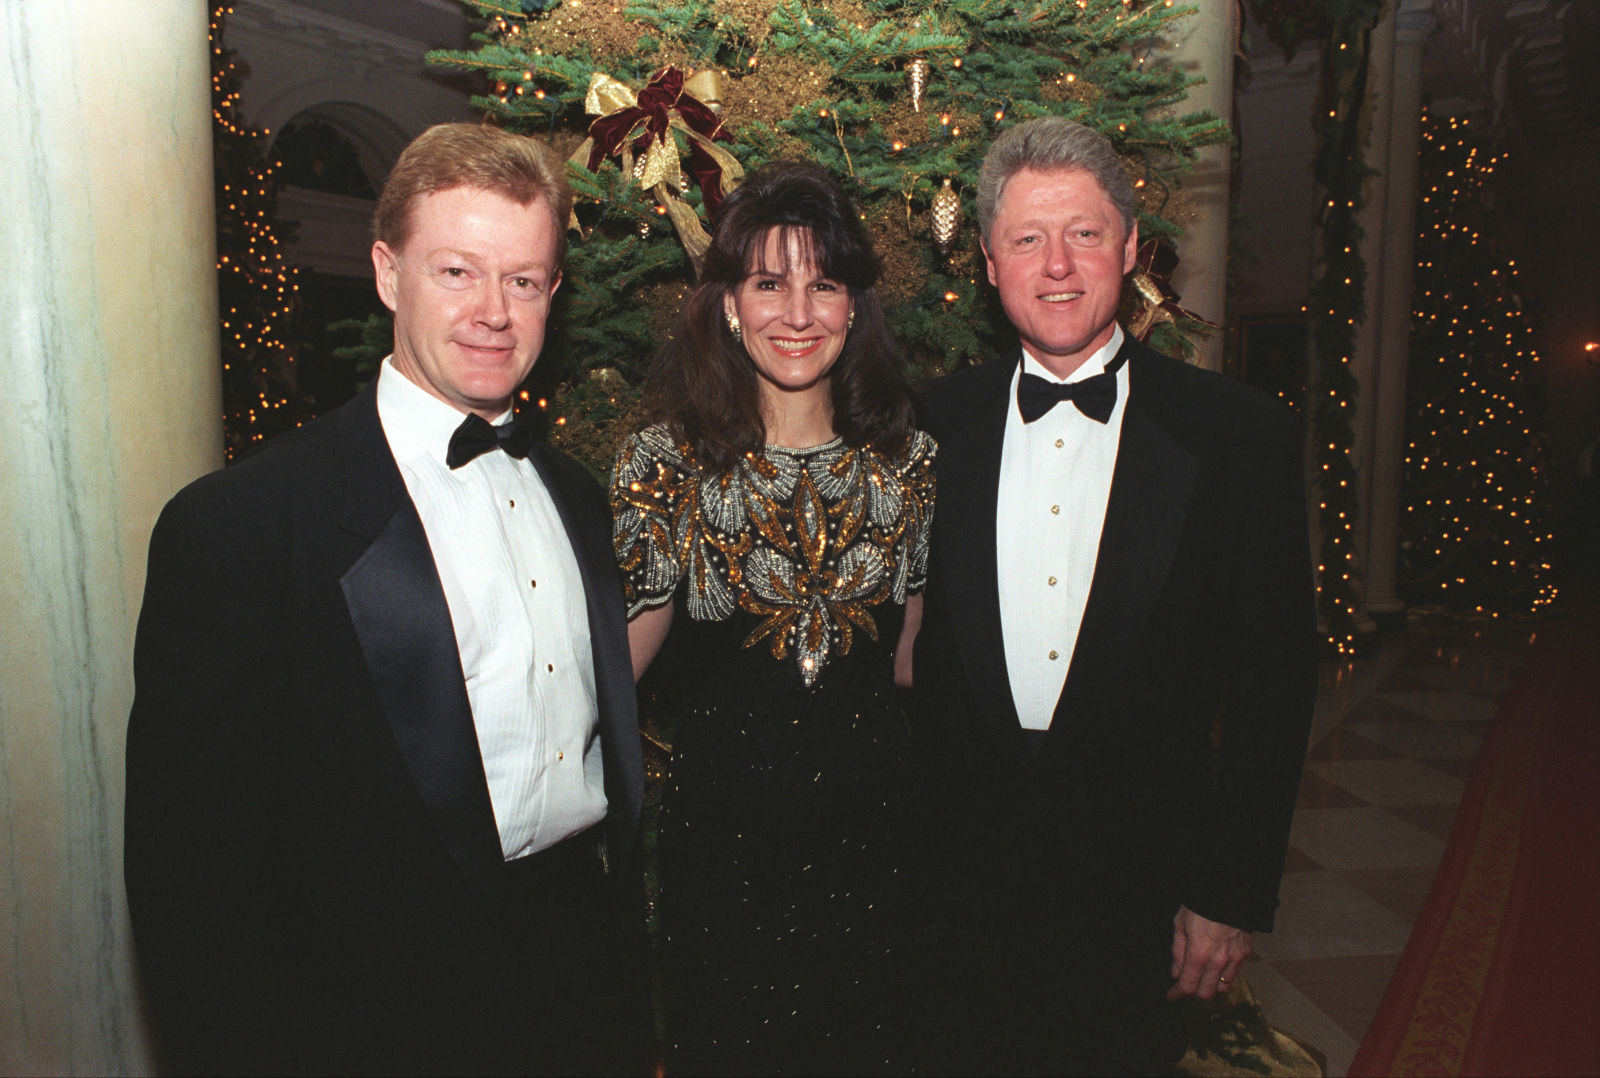 Dan Emmett & wife with President Clinton